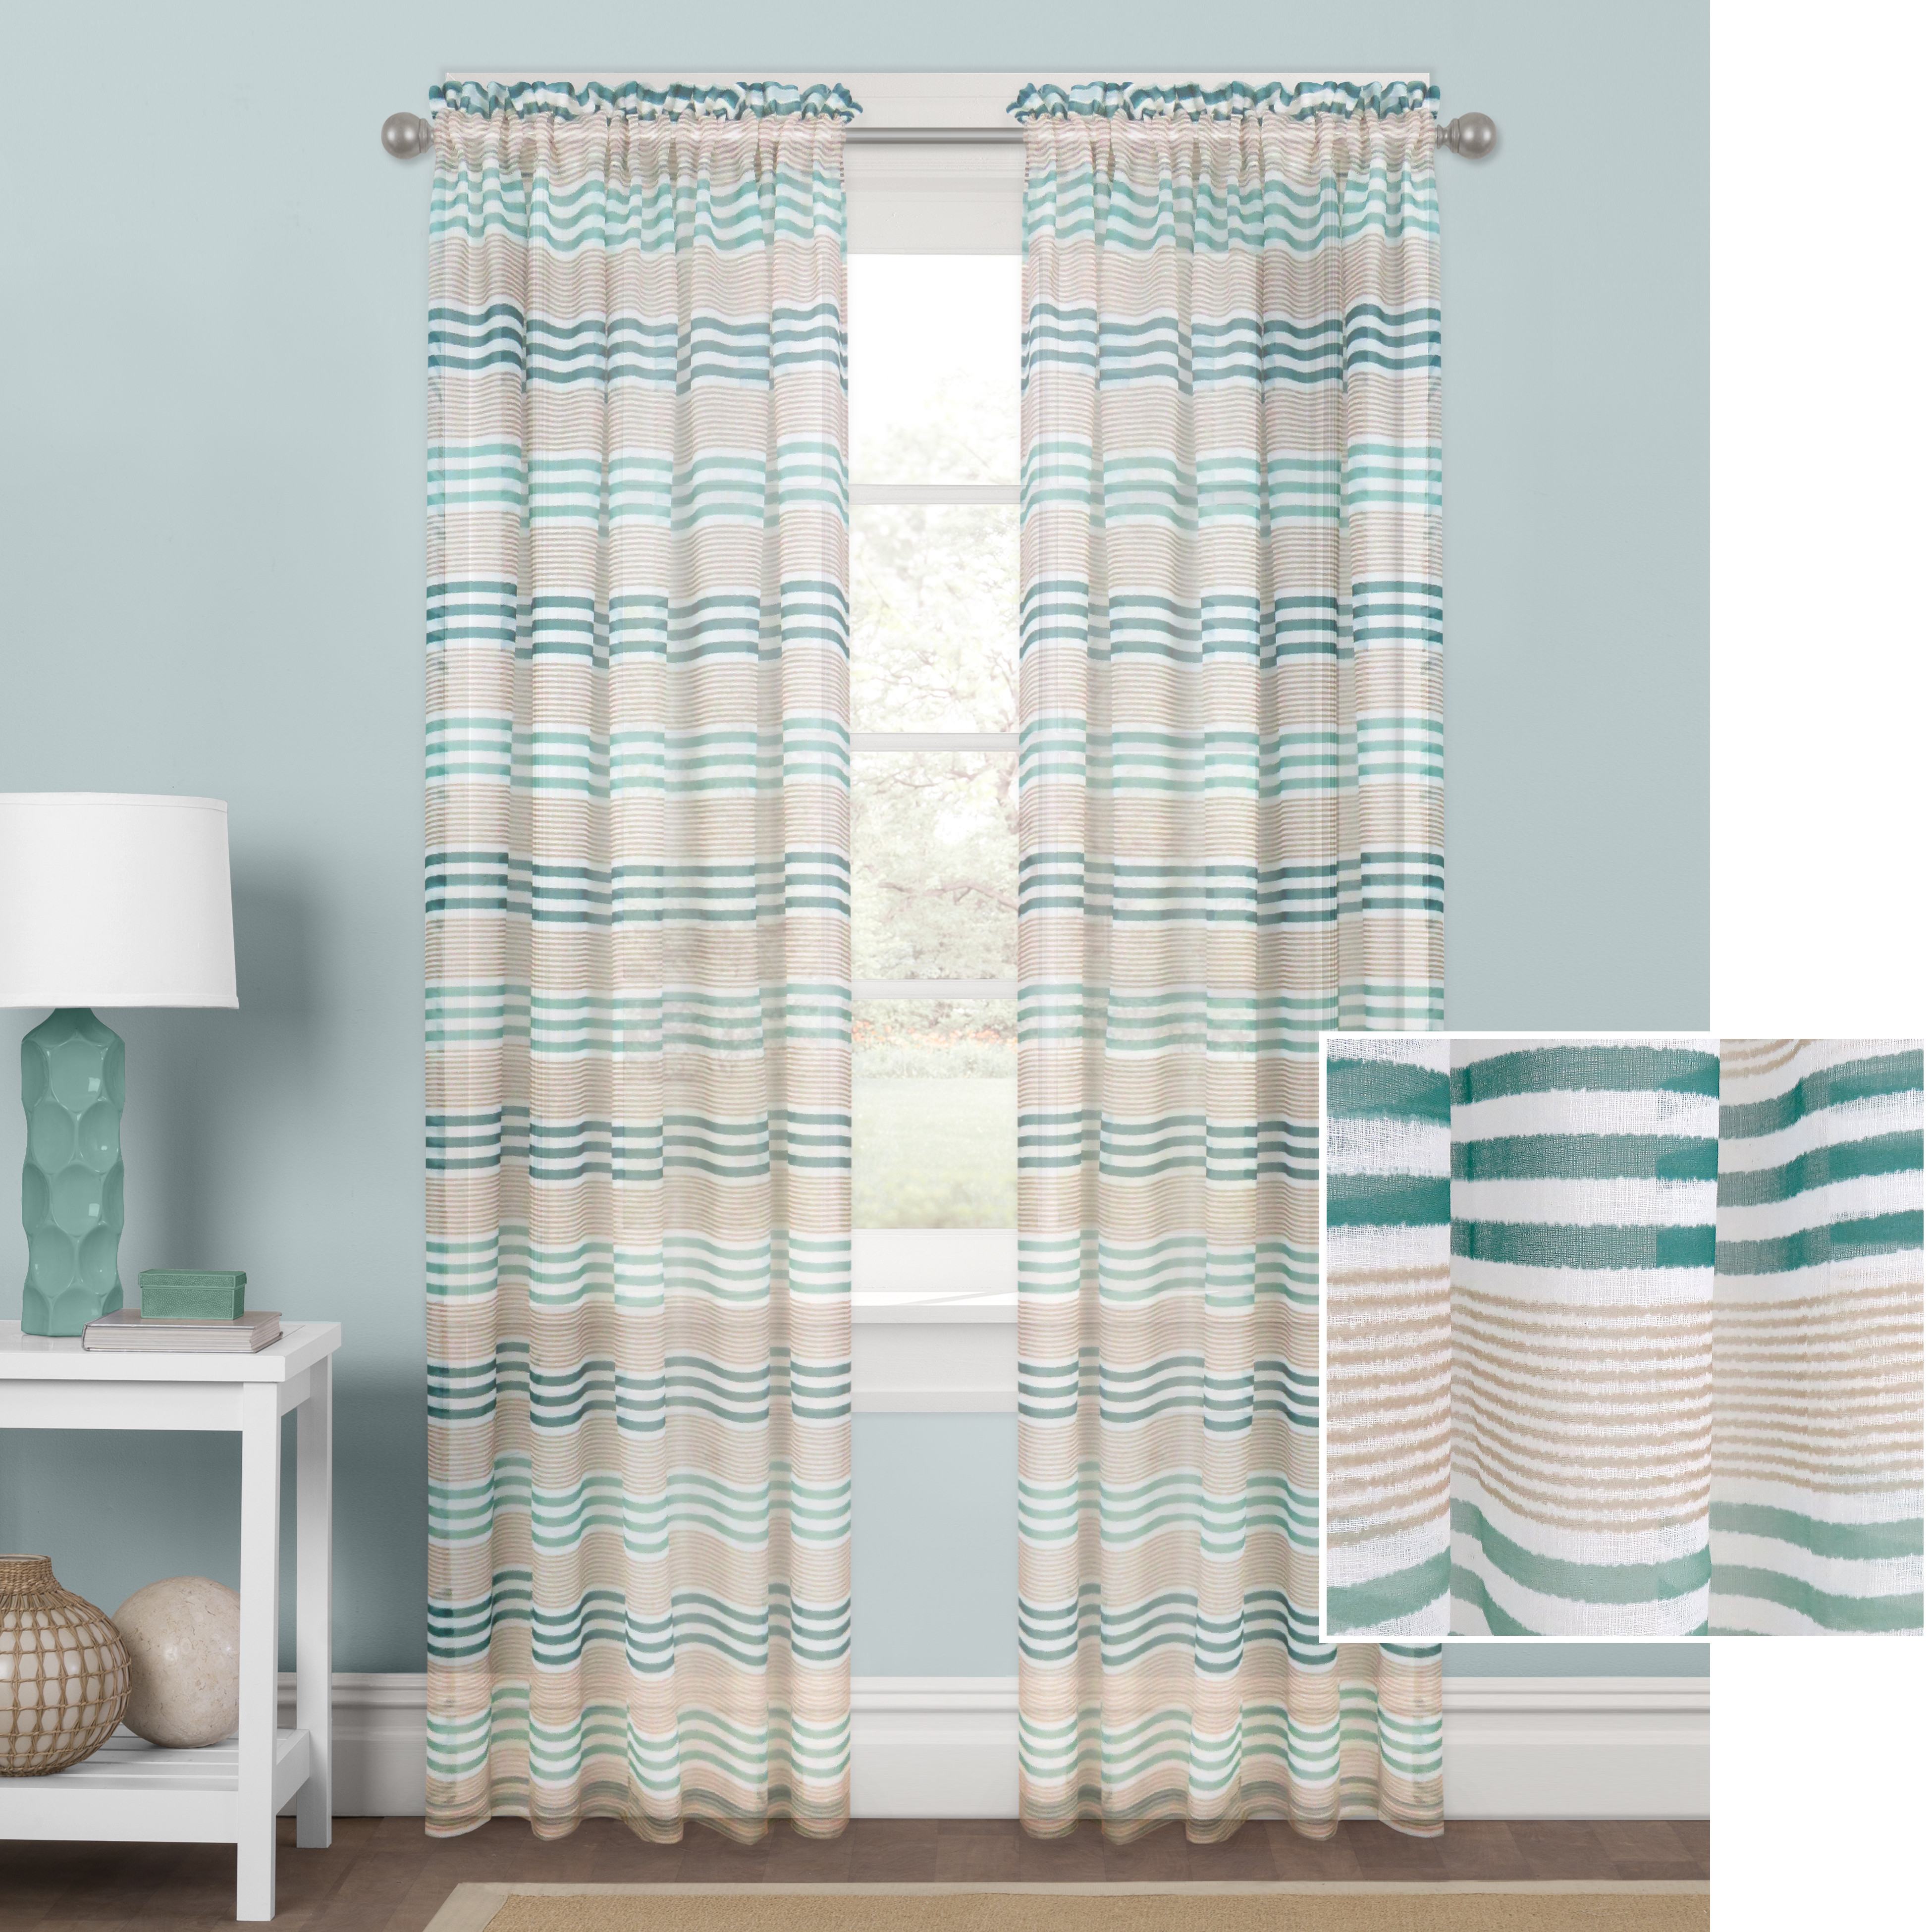 Better Homes and Gardens Hampton Stripe Sheer Curtain Panel